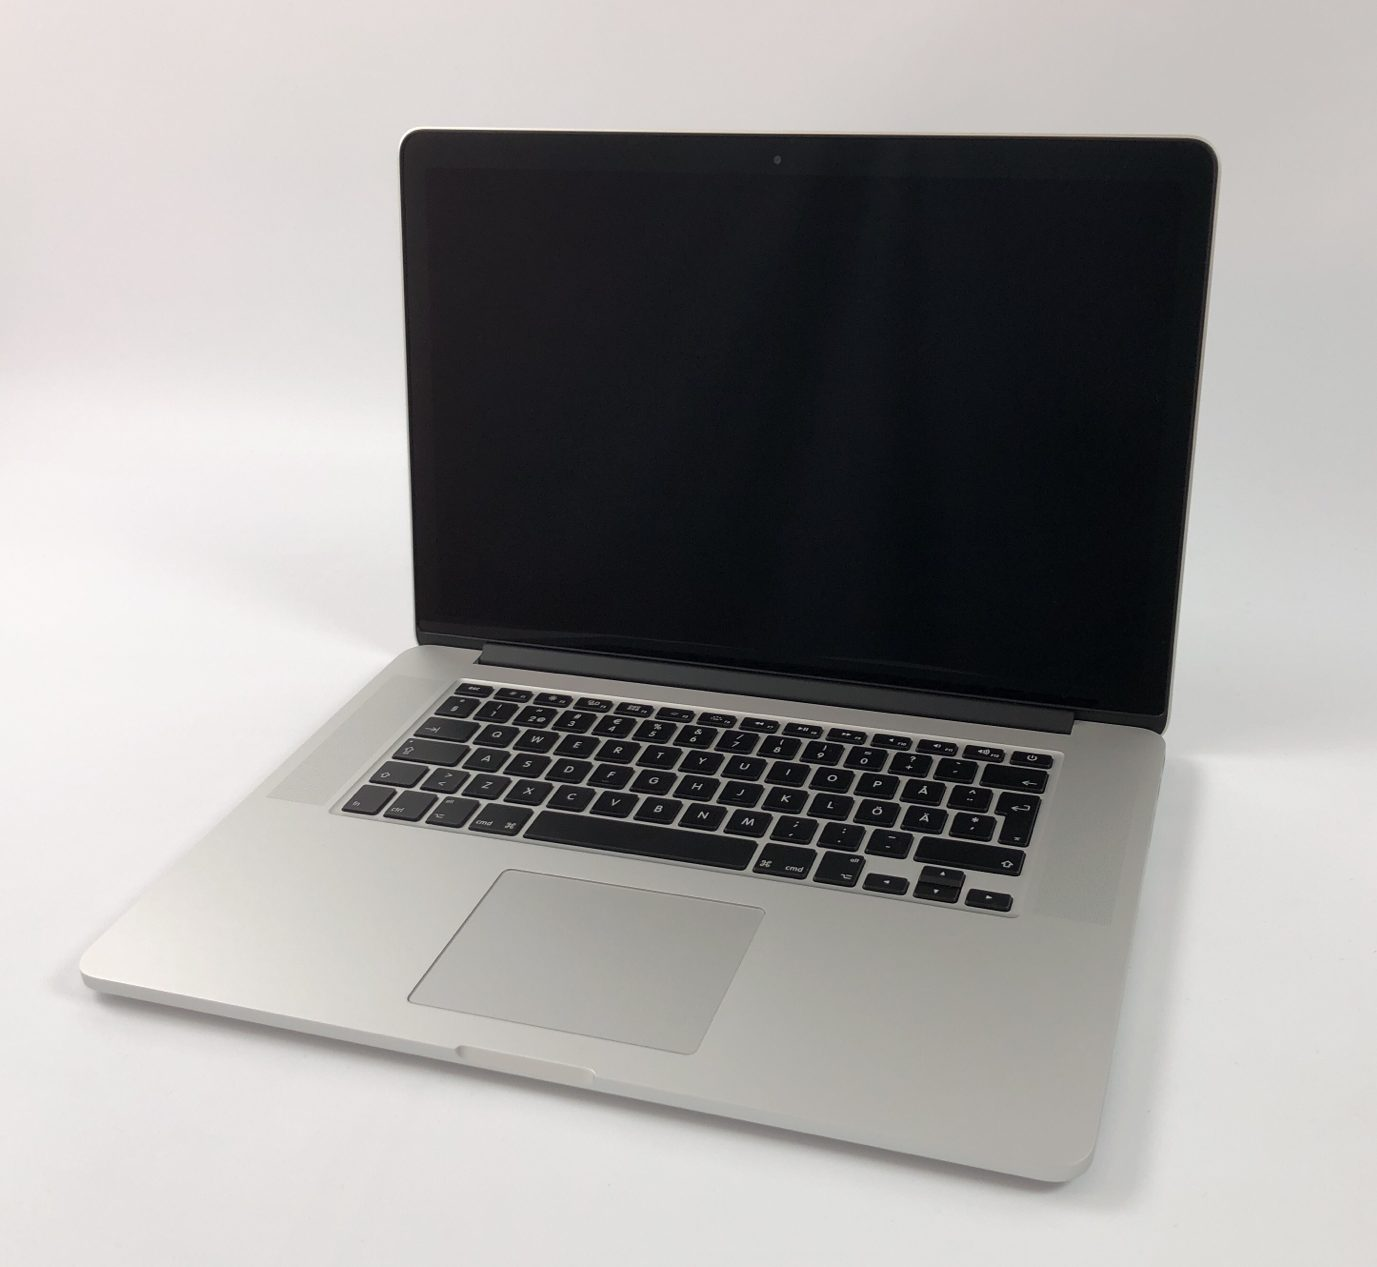 "MacBook Pro Retina 15"" Mid 2015 (Intel Quad-Core i7 2.5 GHz 16 GB RAM 512 GB SSD), Intel Quad-Core i7 2.5 GHz, 16 GB RAM, 512 GB SSD, bild 1"